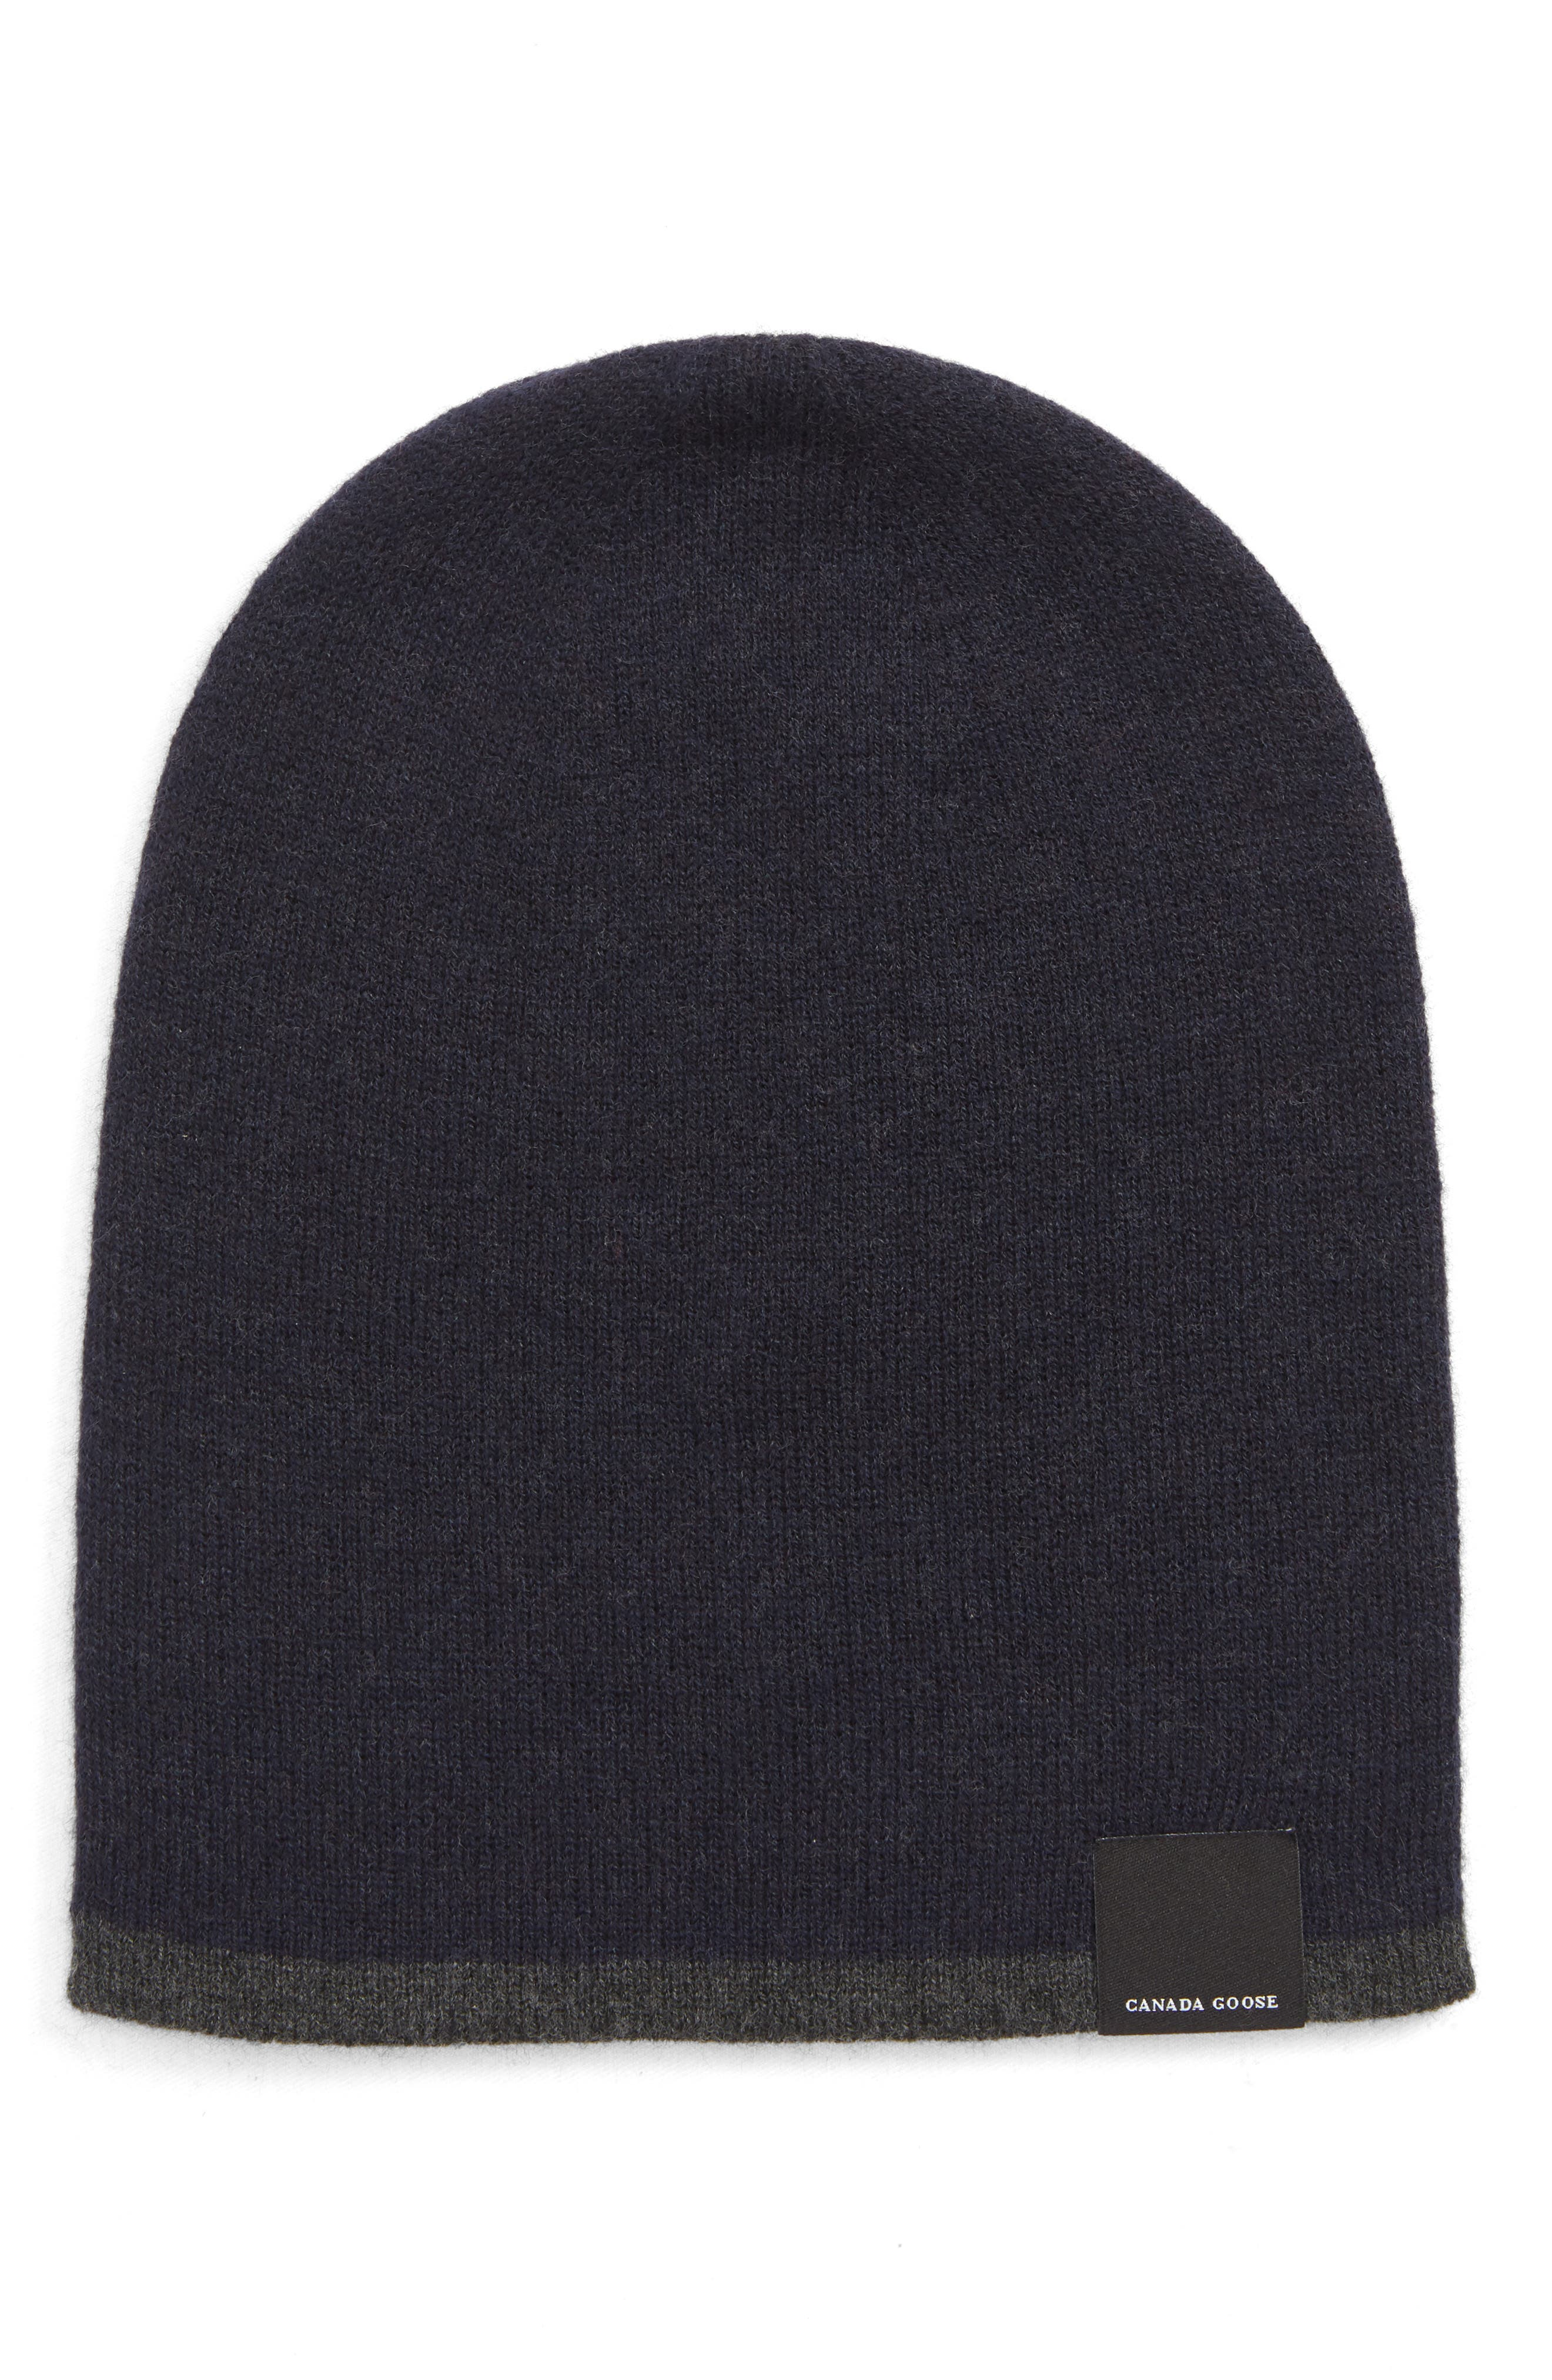 Men'S Reversible Wool Toque Beanie Hat in Navy